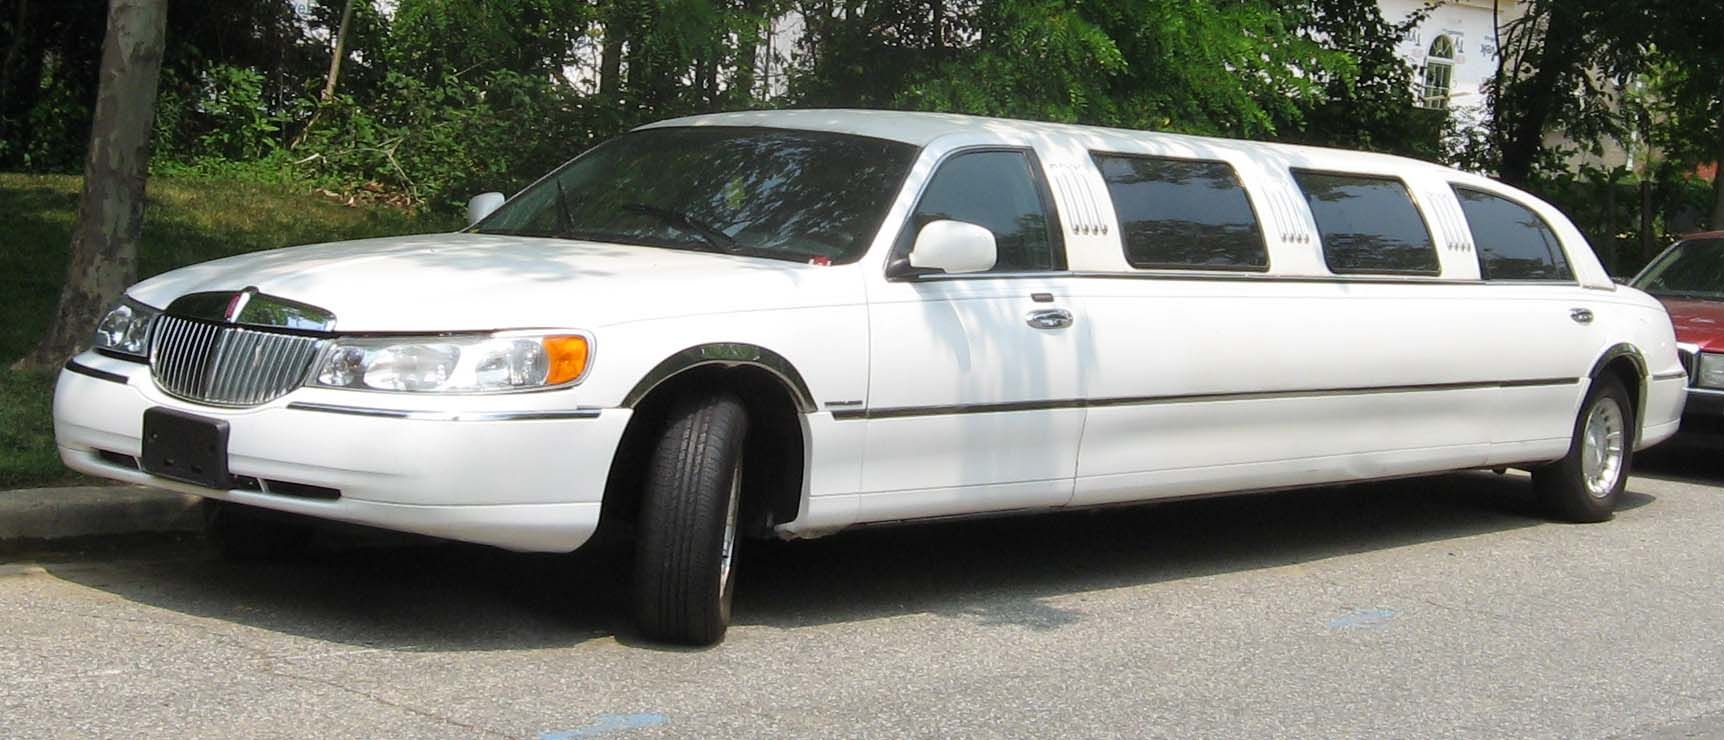 lincoln town car limousine luxury car pinterest limo and lincoln town car. Black Bedroom Furniture Sets. Home Design Ideas